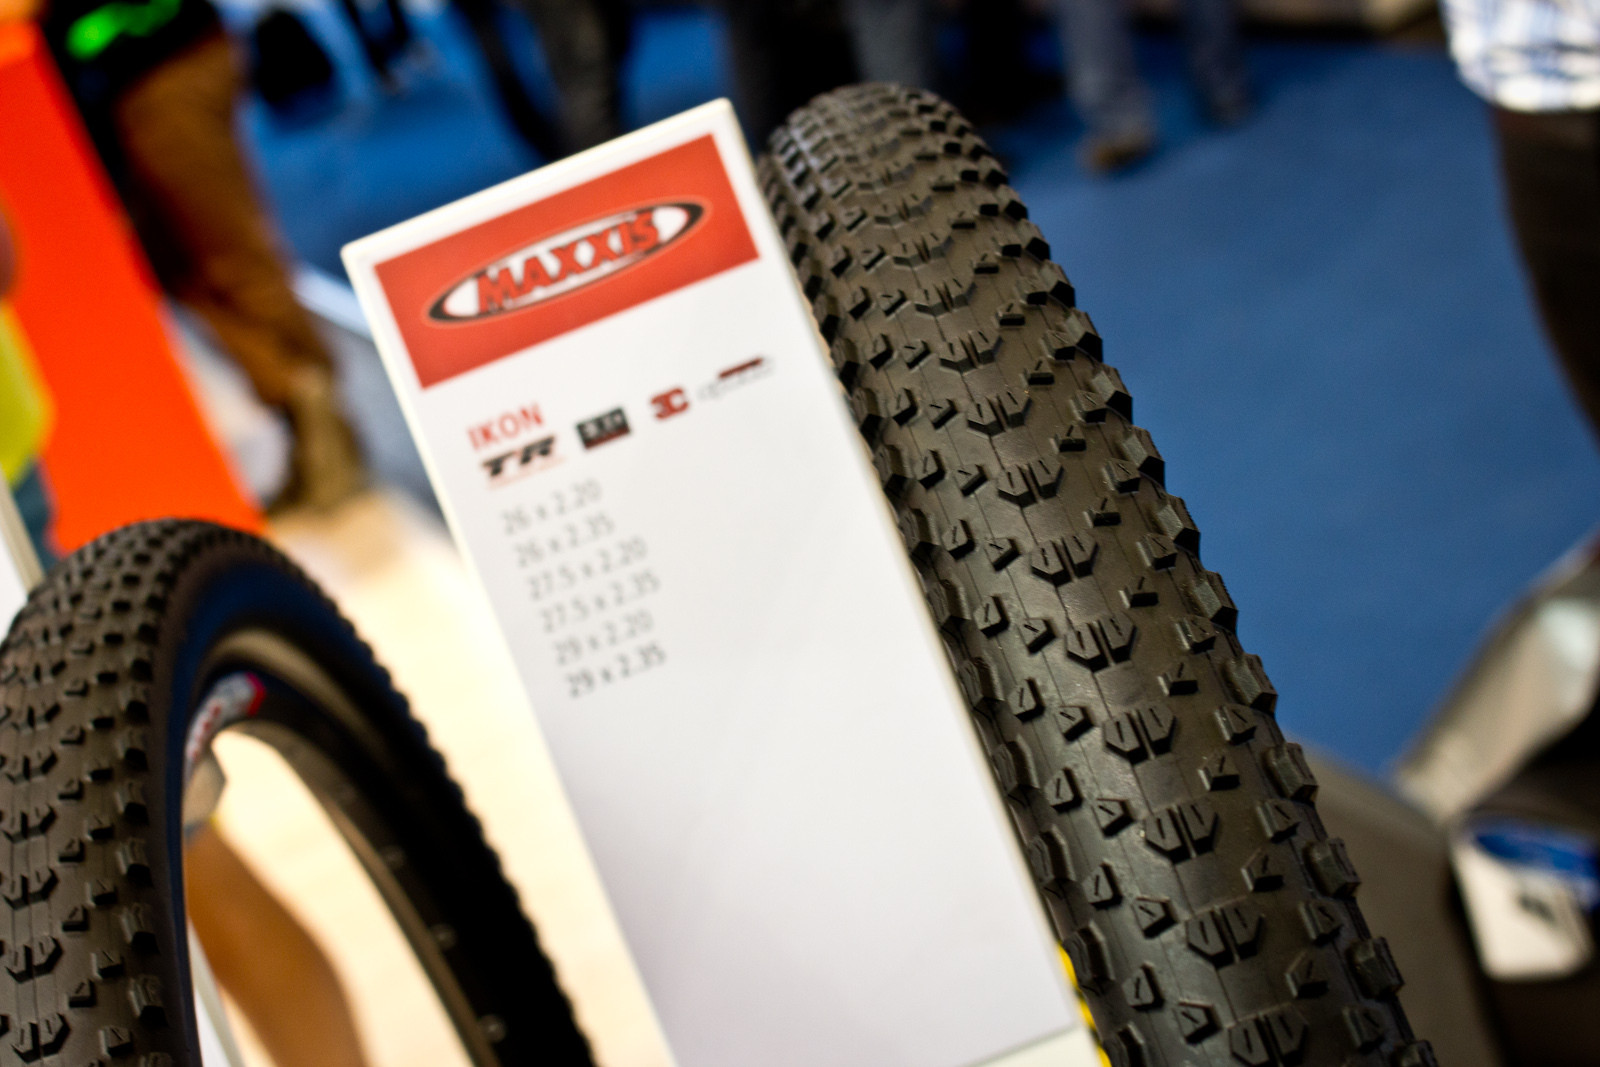 Maxxis Ikon in 29x2.35 - 2014 Mountain Bike Components at Eurobike 2013 - Mountain Biking Pictures - Vital MTB